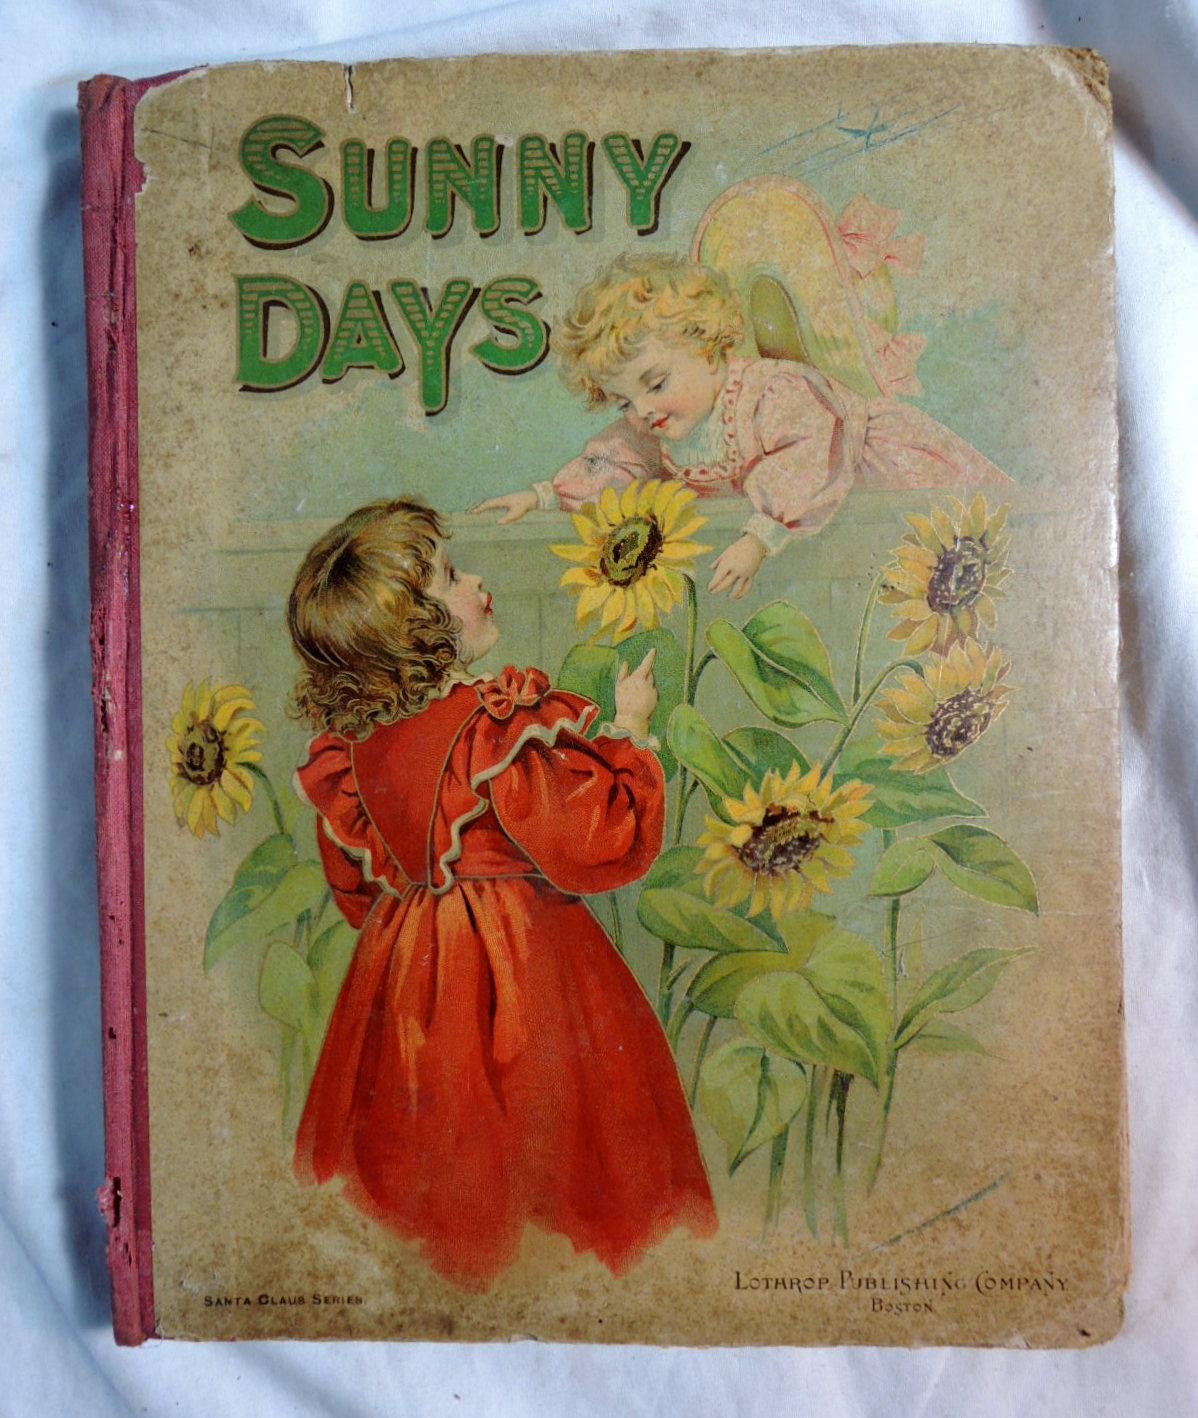 Sunny Days & Playtime Hours Lothrop Publishing Co. Boston 1900 nursery rhymes & stories for...